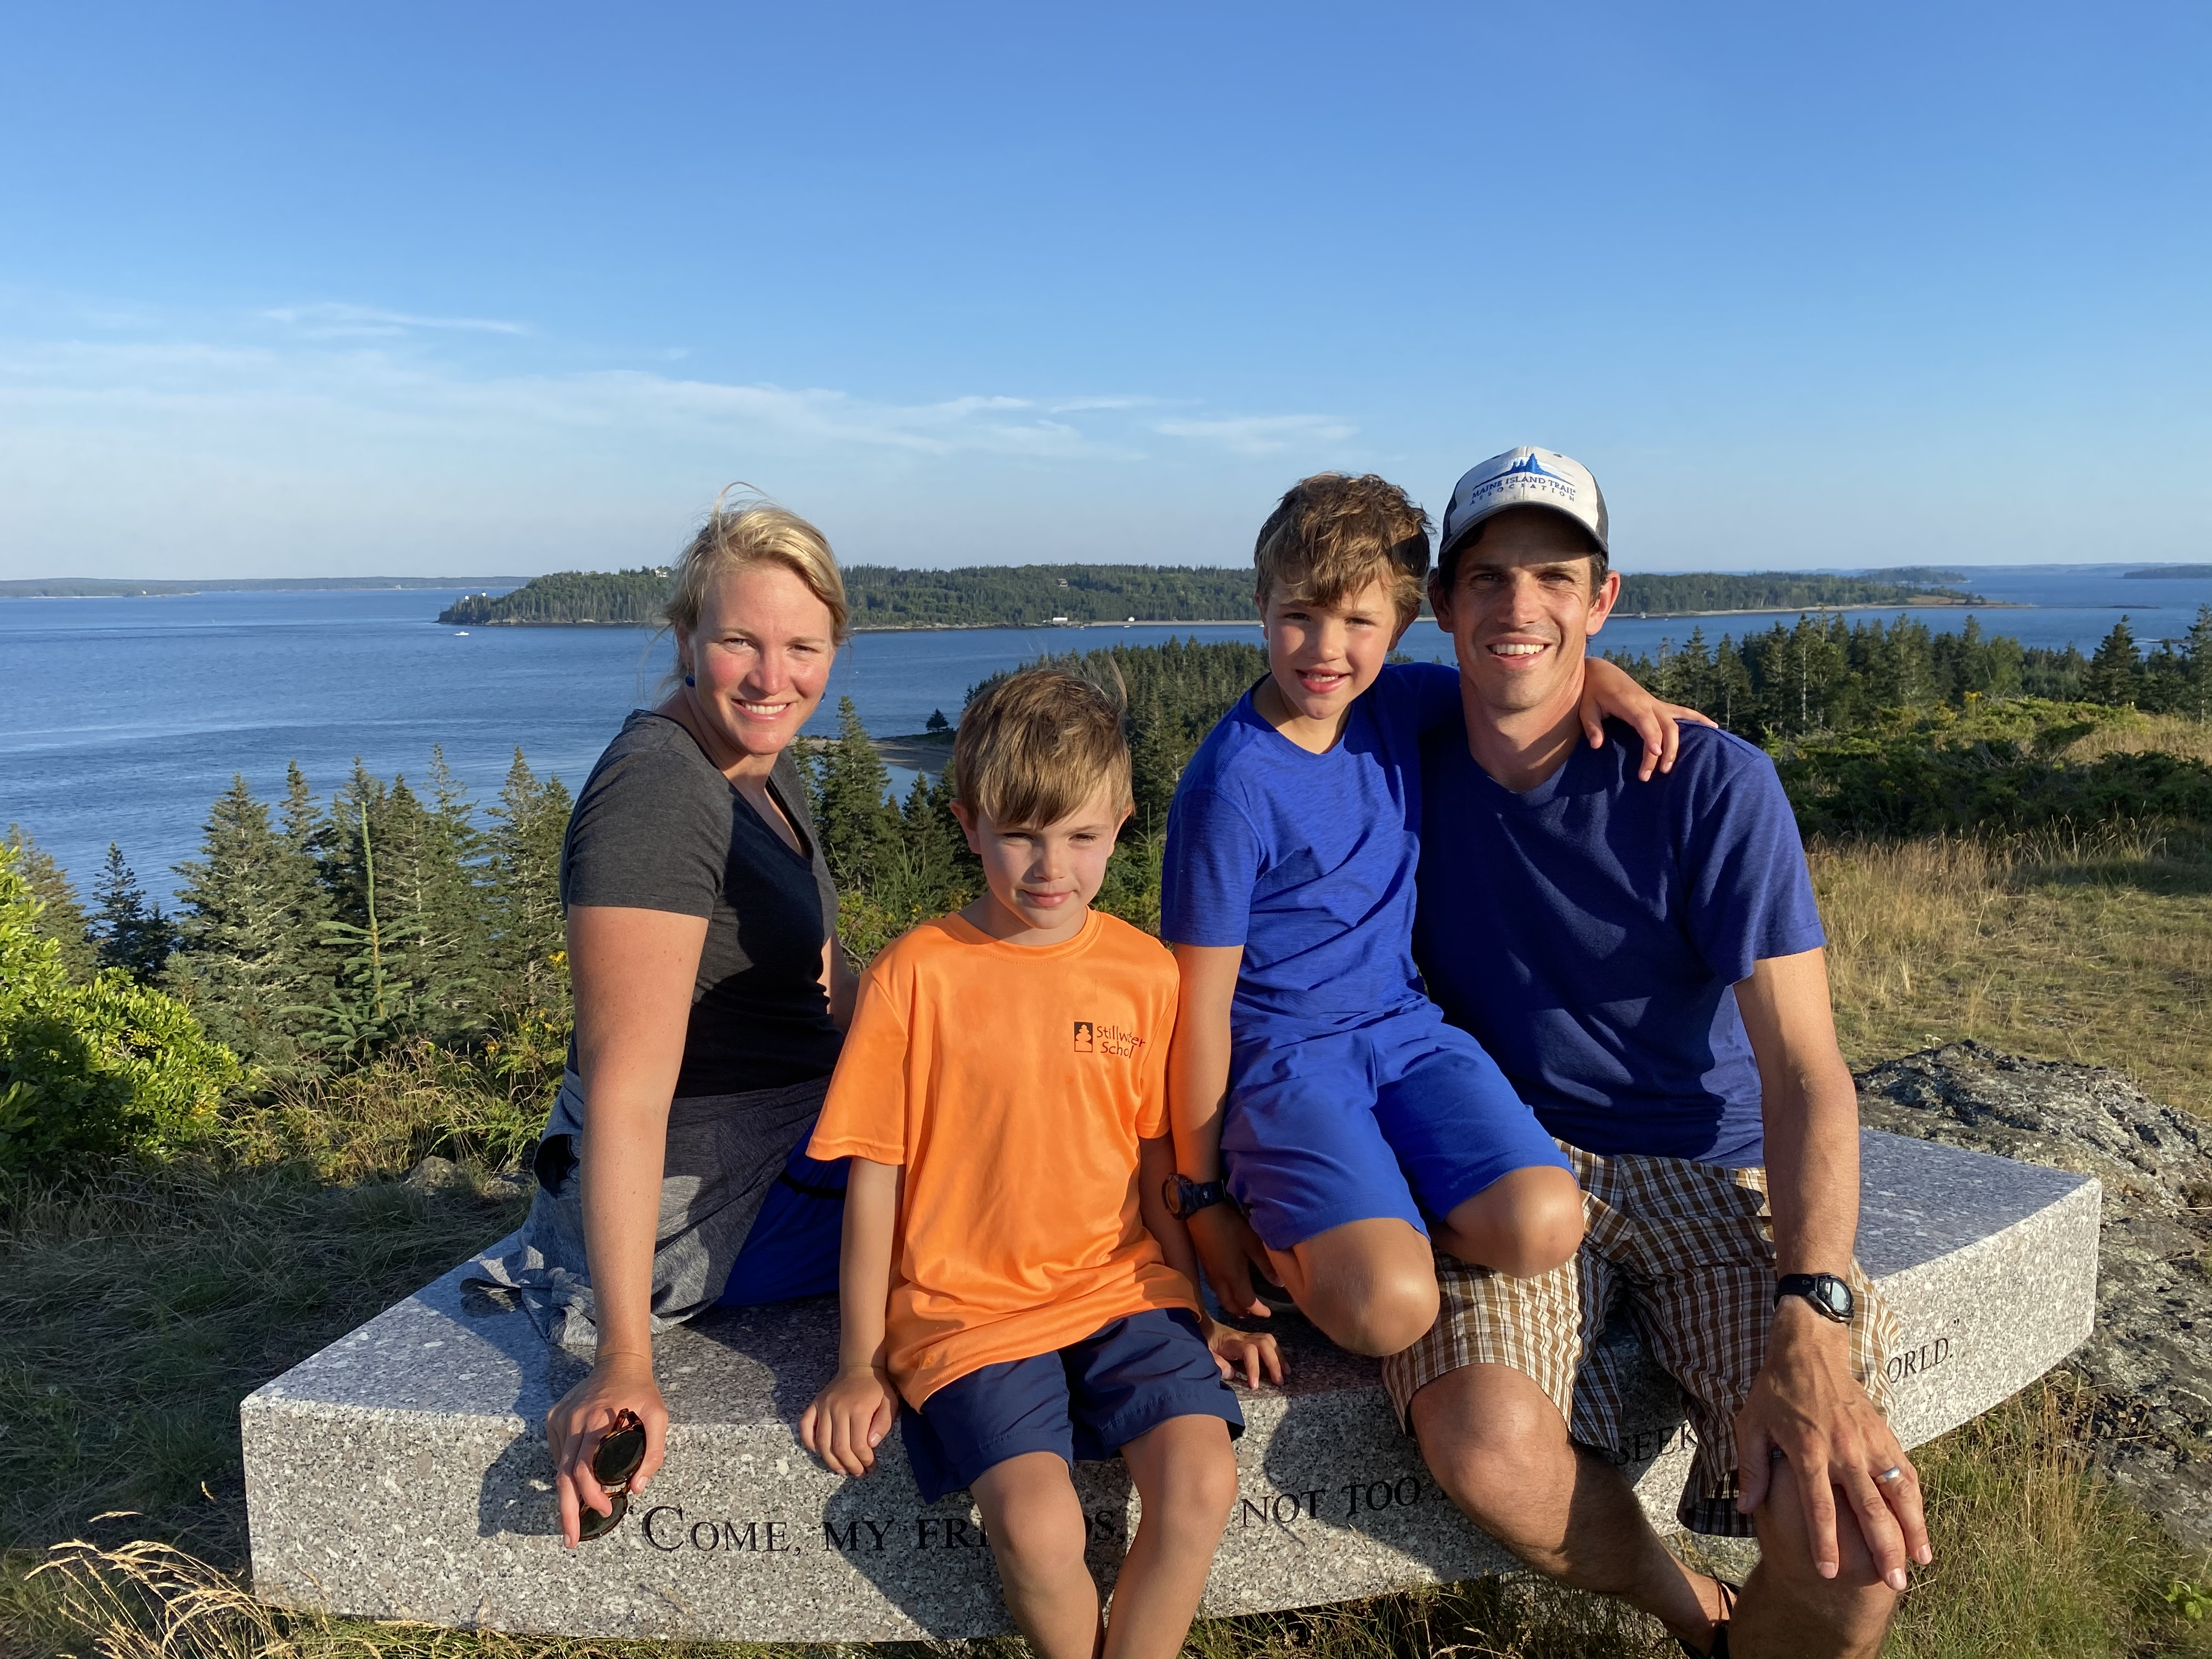 Jordi and his family relaxing in Maine